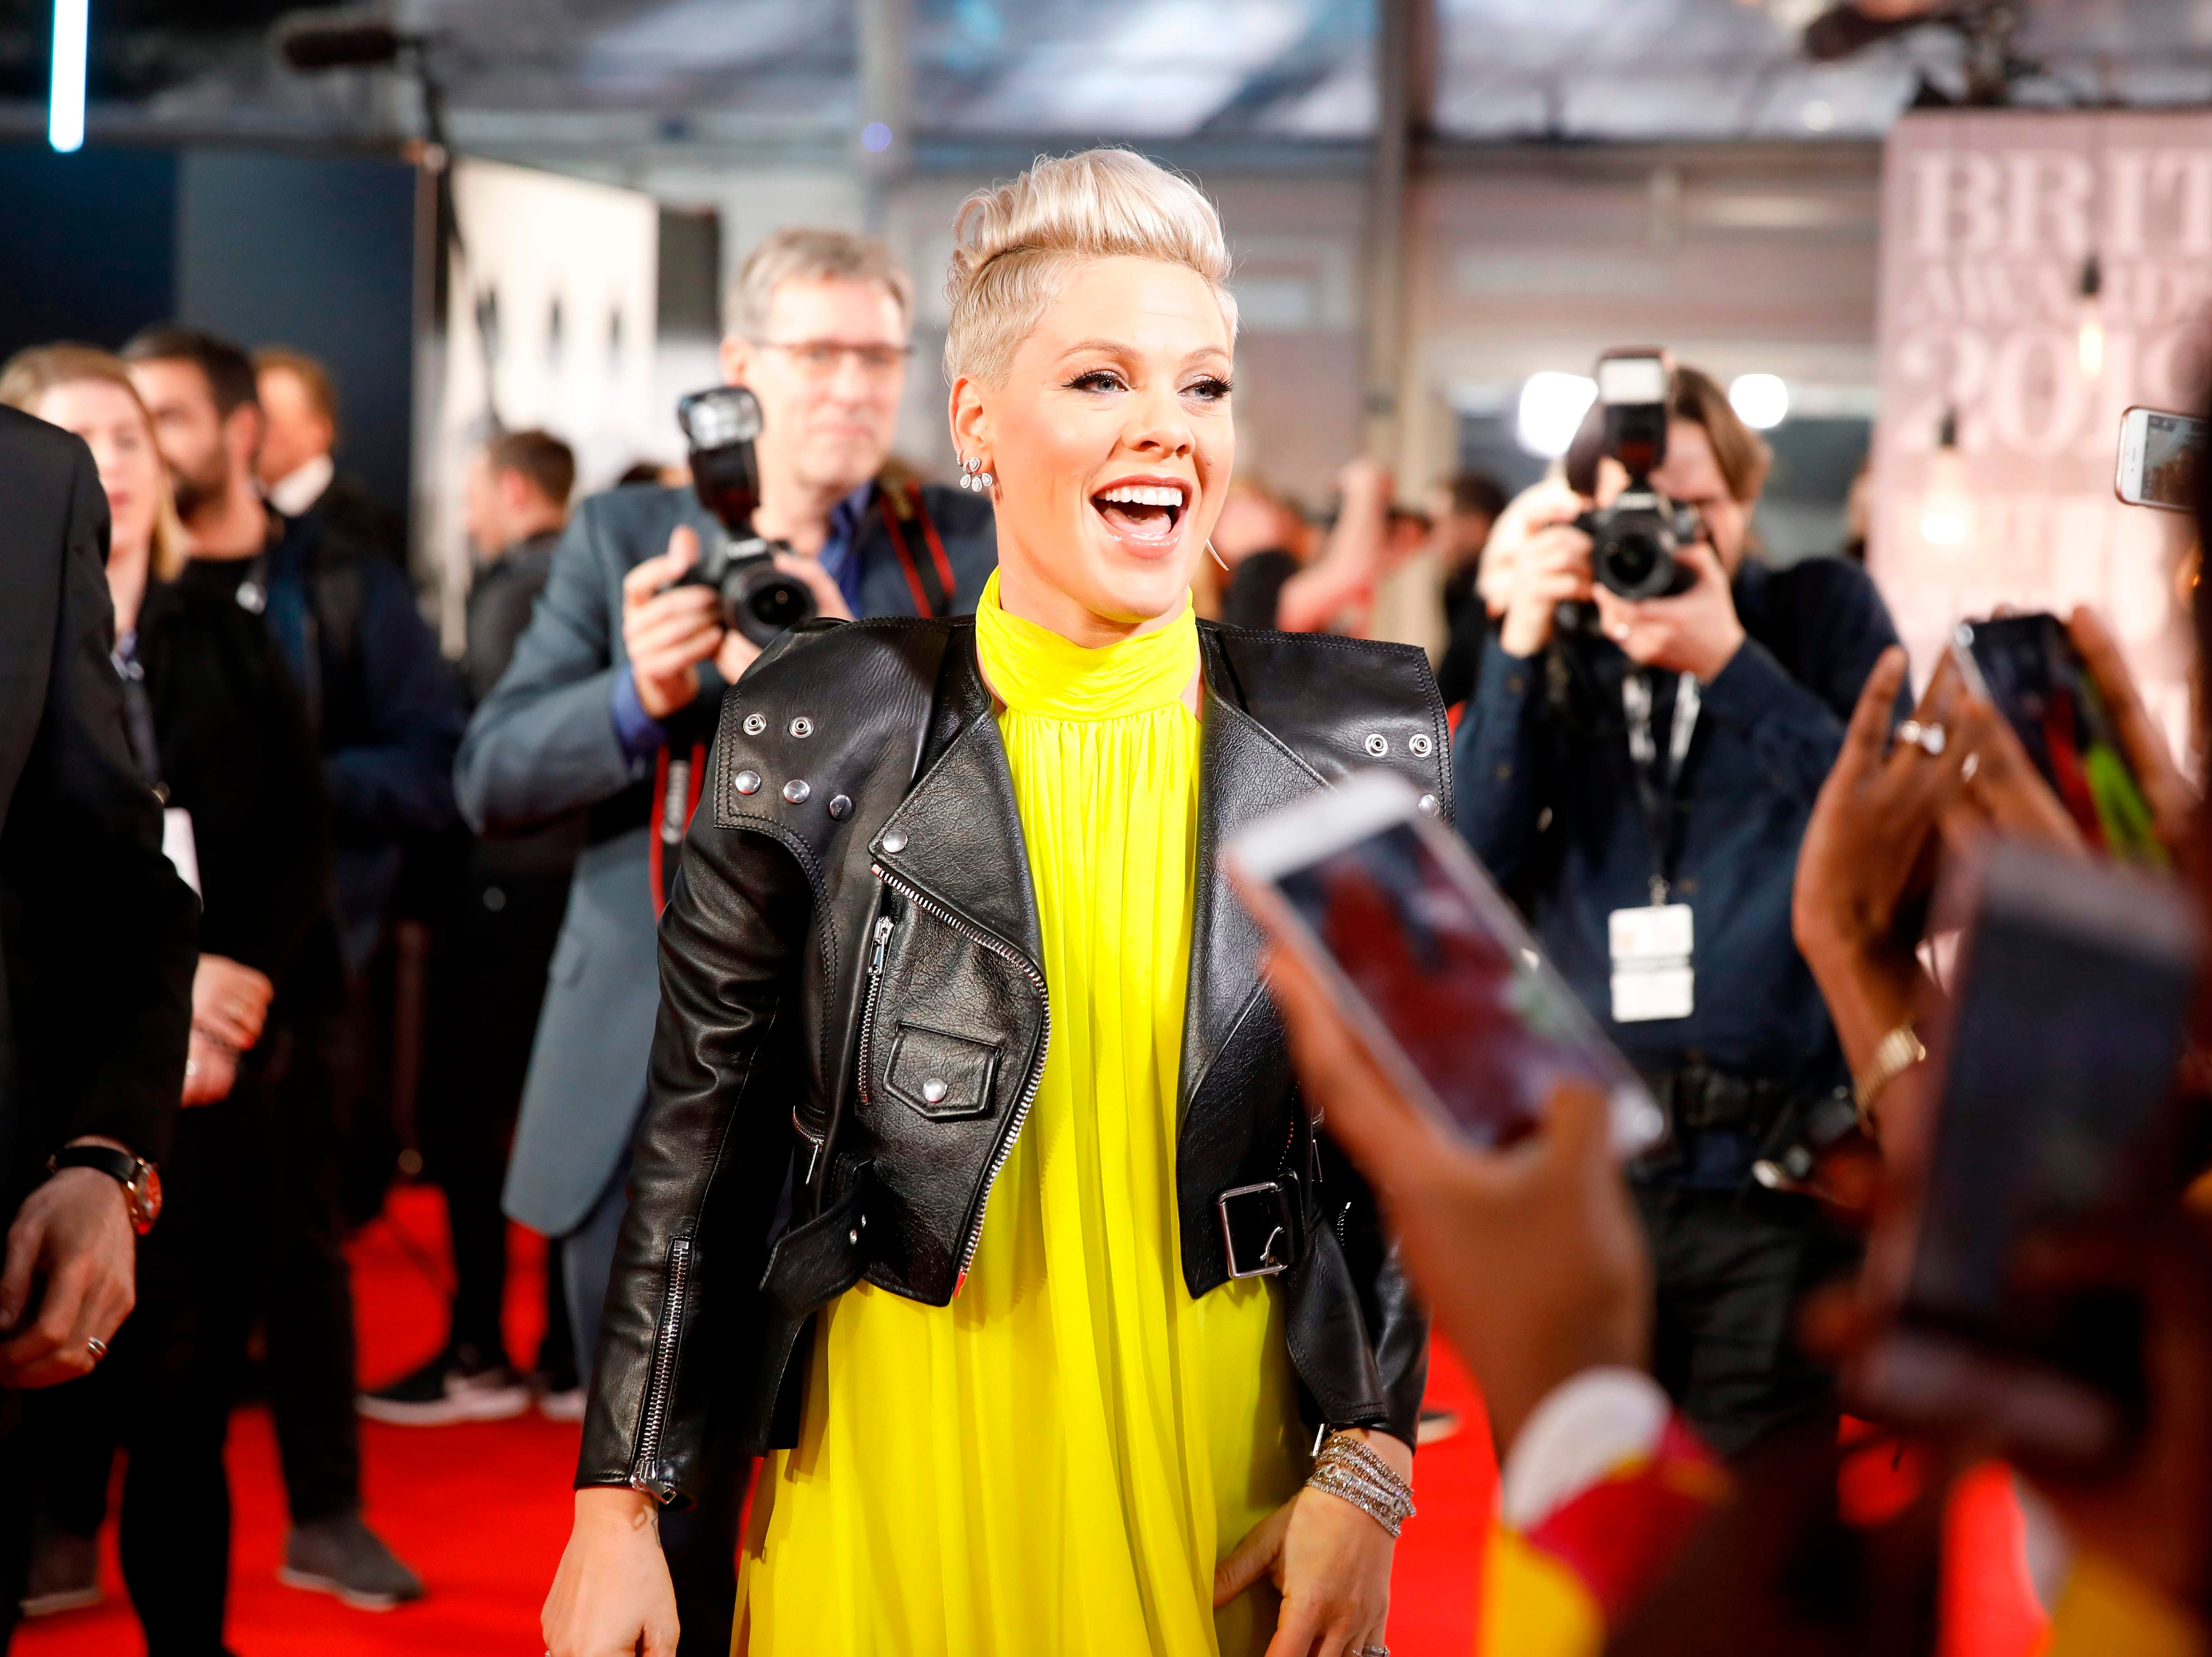 US singer-songwriter Pink reacts on the red carpet on arrival for the BRIT Awards 2019 in London on February 20, 2019. (Photo by Tolga AKMEN / AFP) / RESTRICTED TO EDITORIAL USE  NO POSTERS  NO MERCHANDISE NO USE IN PUBLICATIONS DEVOTED TO ARTISTSTOLGA AKMEN/AFP/Getty Images ORIG FILE ID: AFP_1DO25U